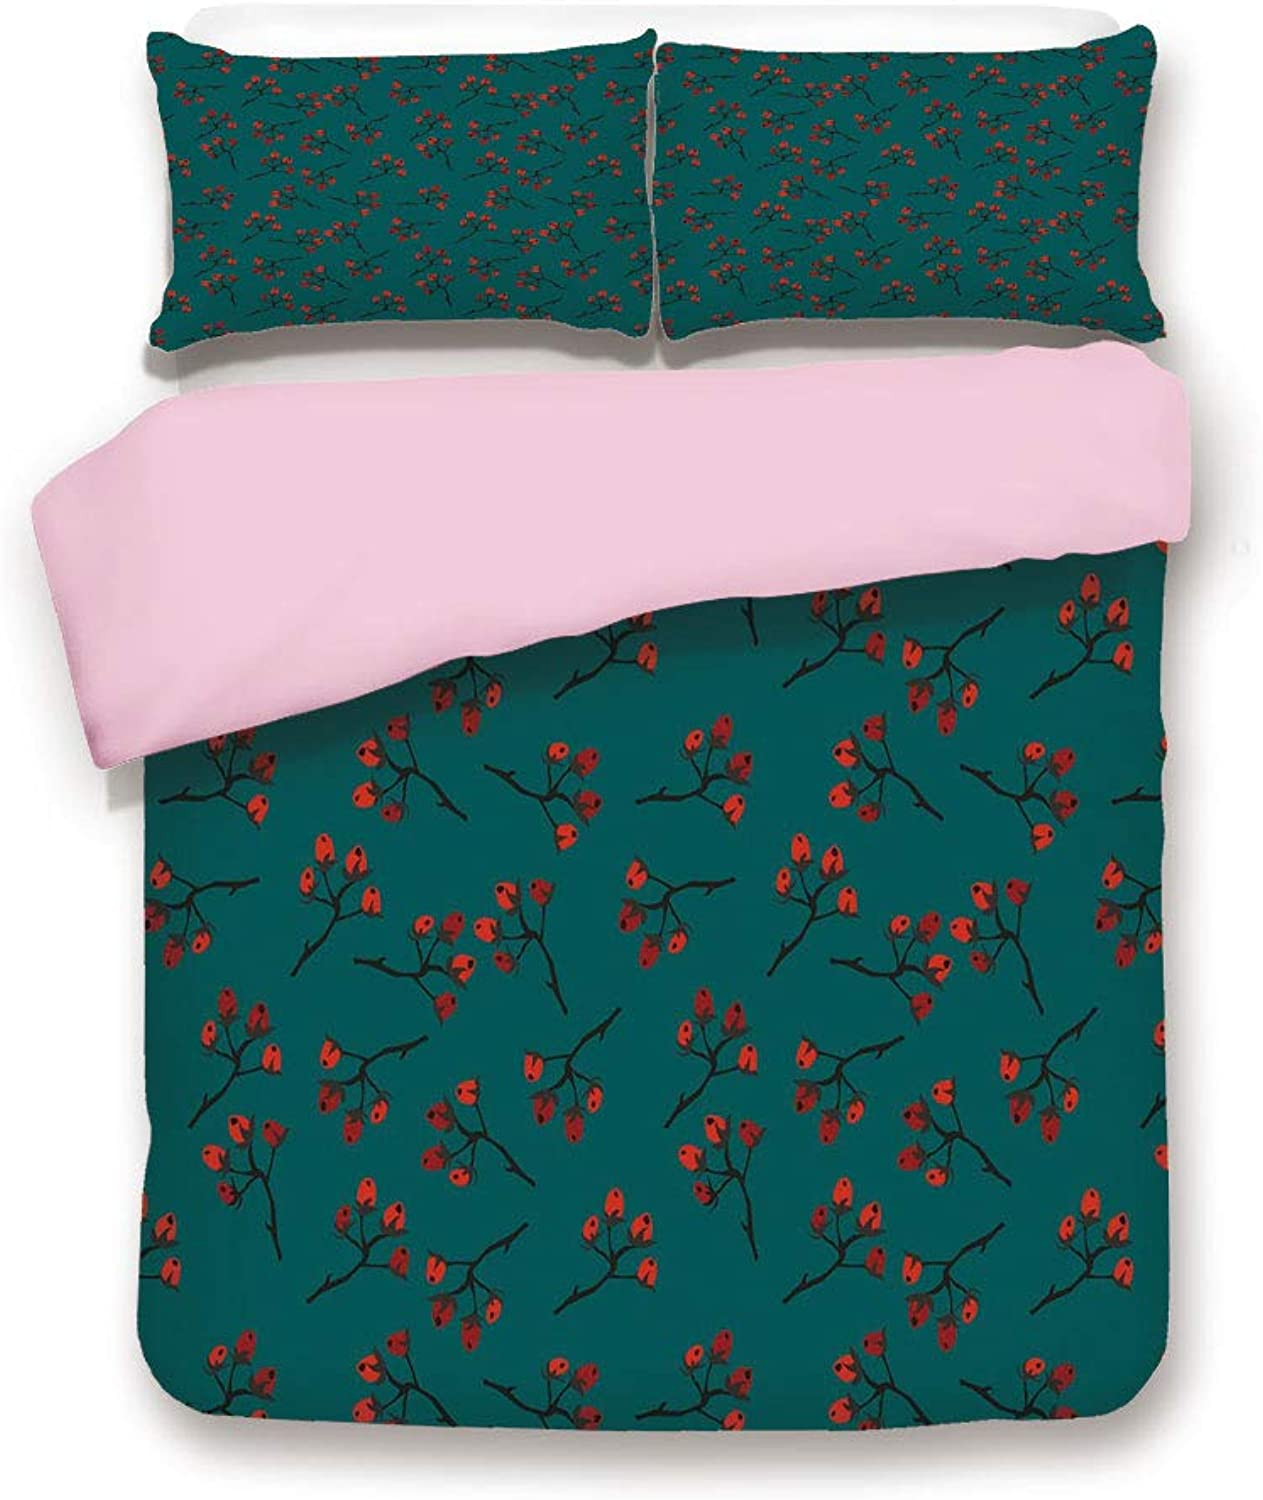 Pink Duvet Cover Set,Queen Size,Whimsical Modern Style Berry Christmas Pattern Hand Drawn Rustic Traditional Decorative,Decorative 3 Piece Bedding Set with 2 Pillow Sham,Best Gift For Girls Women,Teal